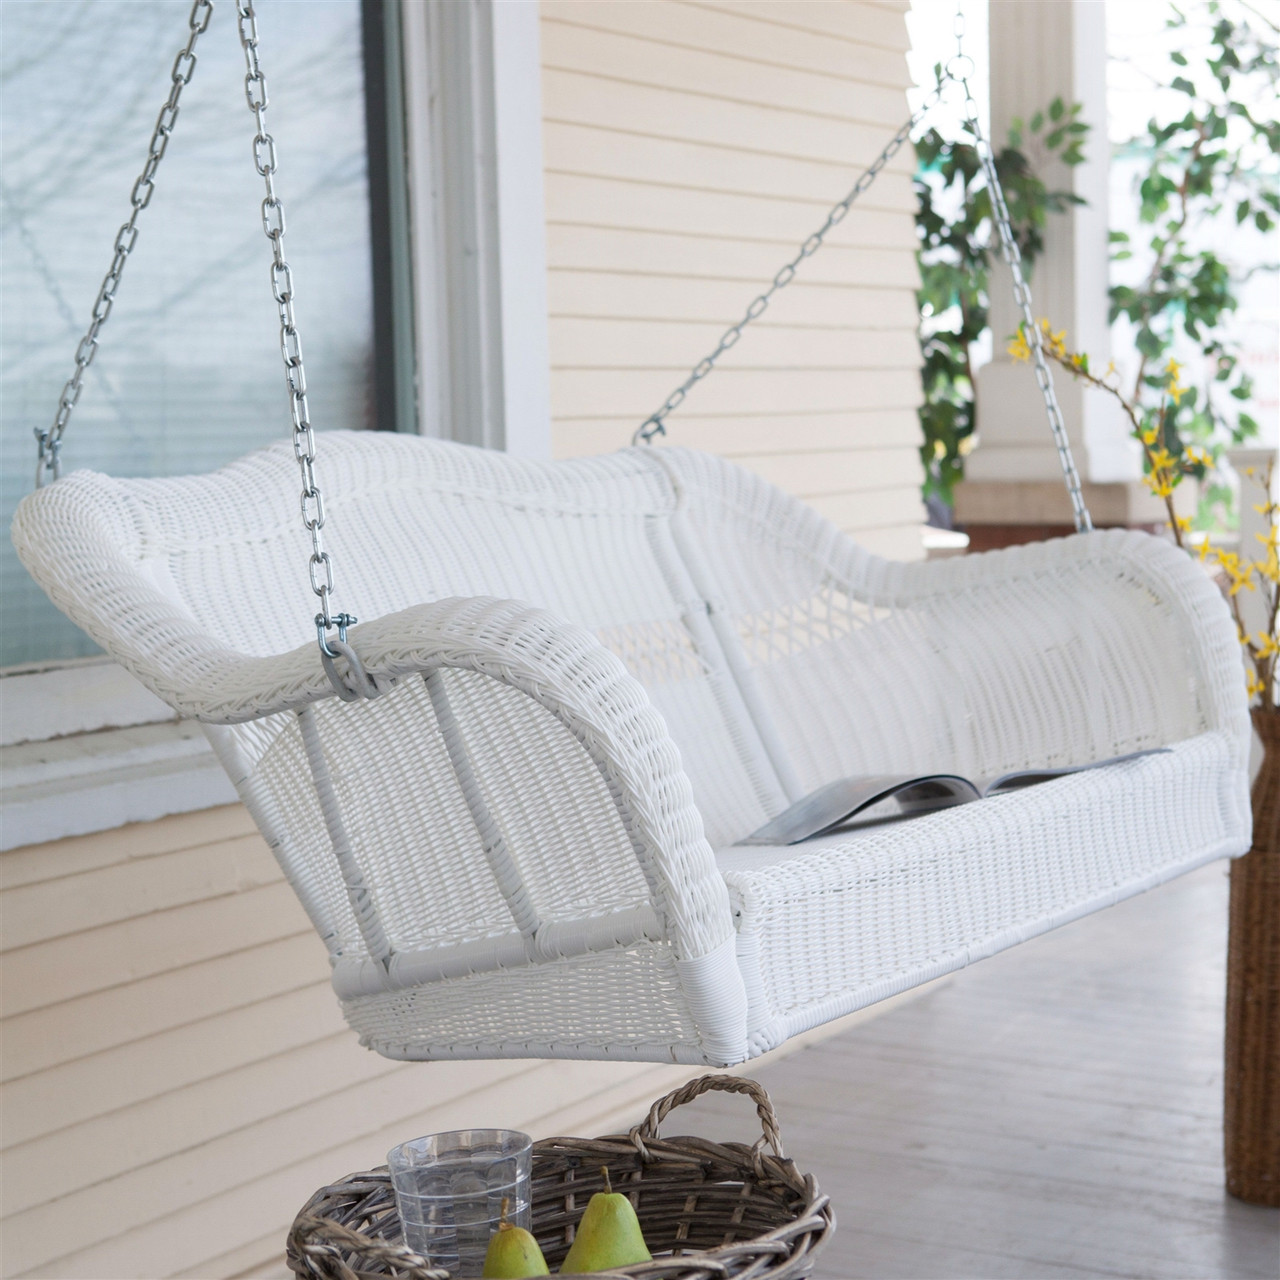 White Resin Wicker Porch Swing Hanging Chain - 600-lb